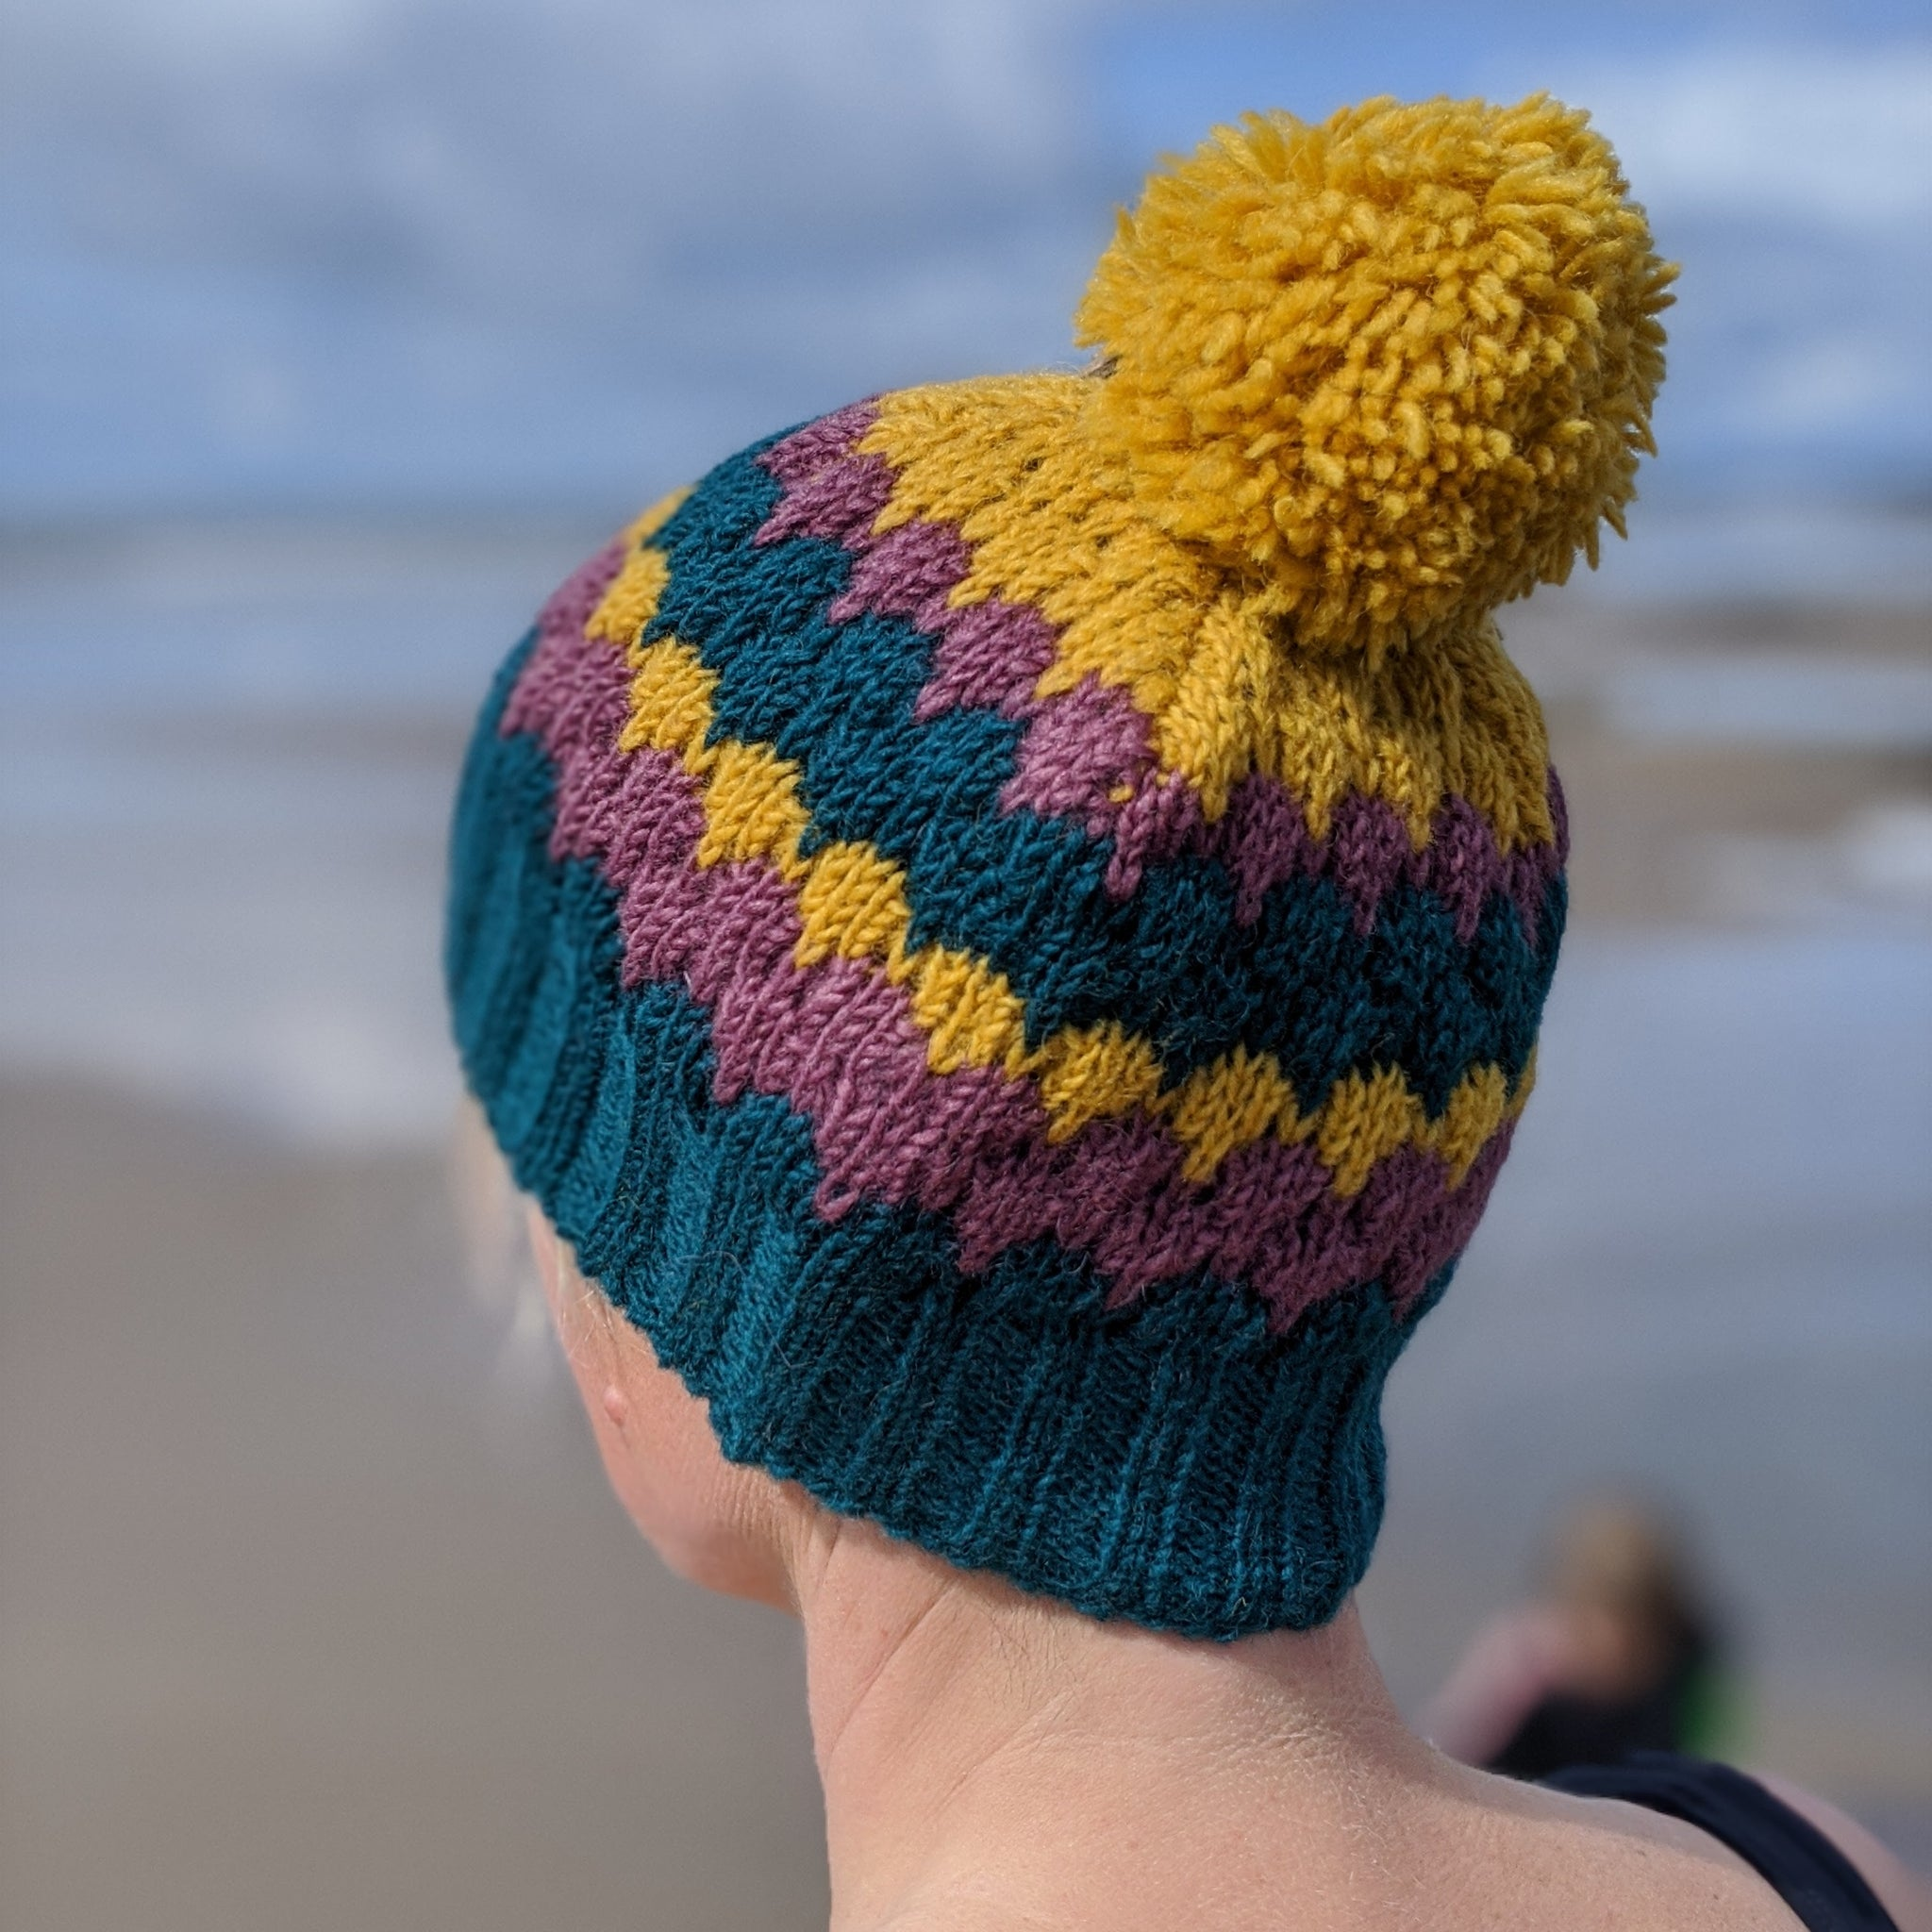 Woolly bobble hat